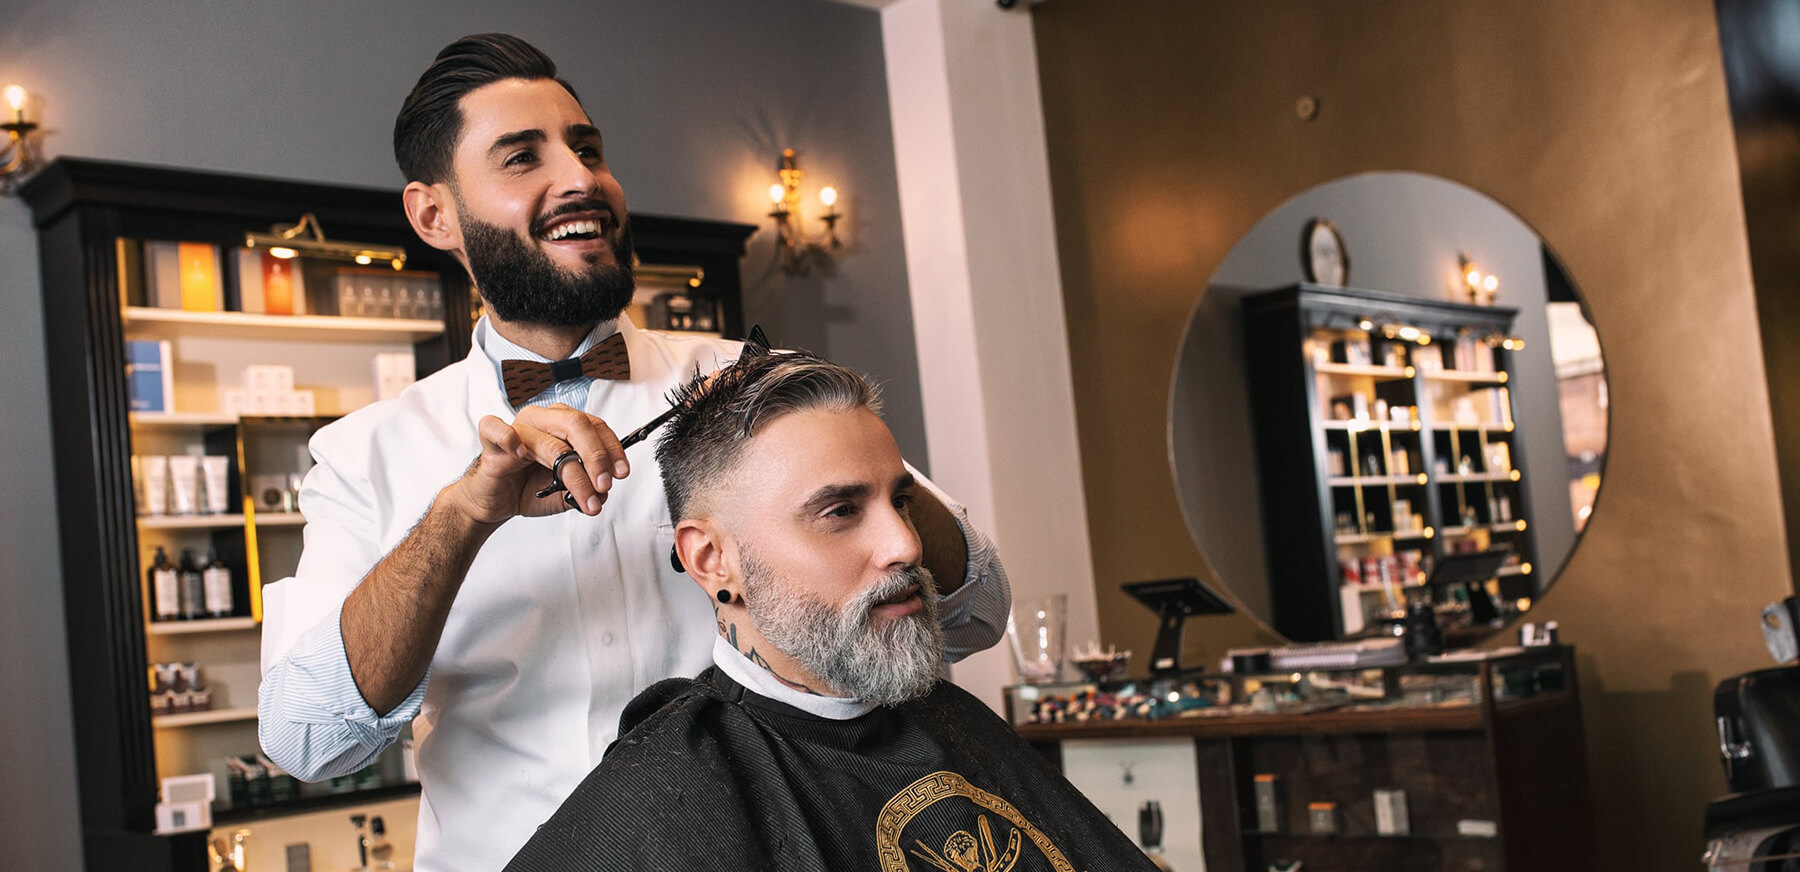 Bester Herrenfriseur & Barber Shop in Düsseldorf